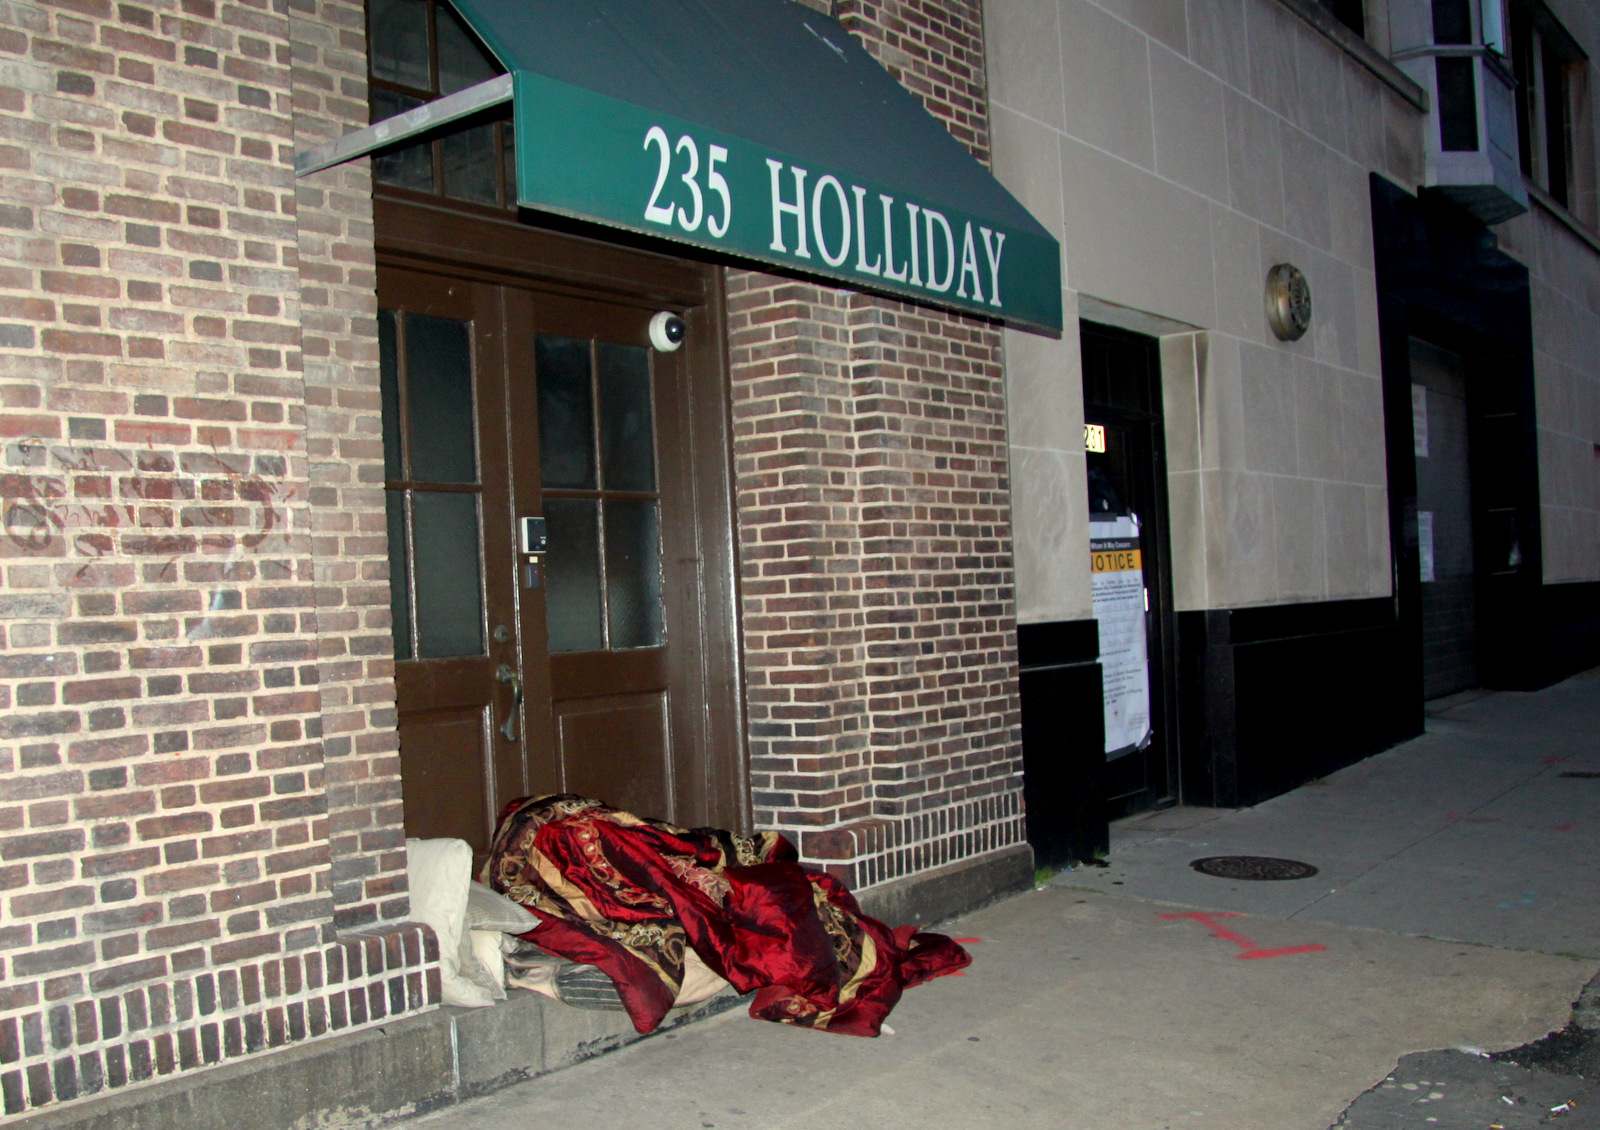 Someone sleeping in a doorway, a block from City Hall, after the council meeting adjourned. (Photo by Fern Shen)